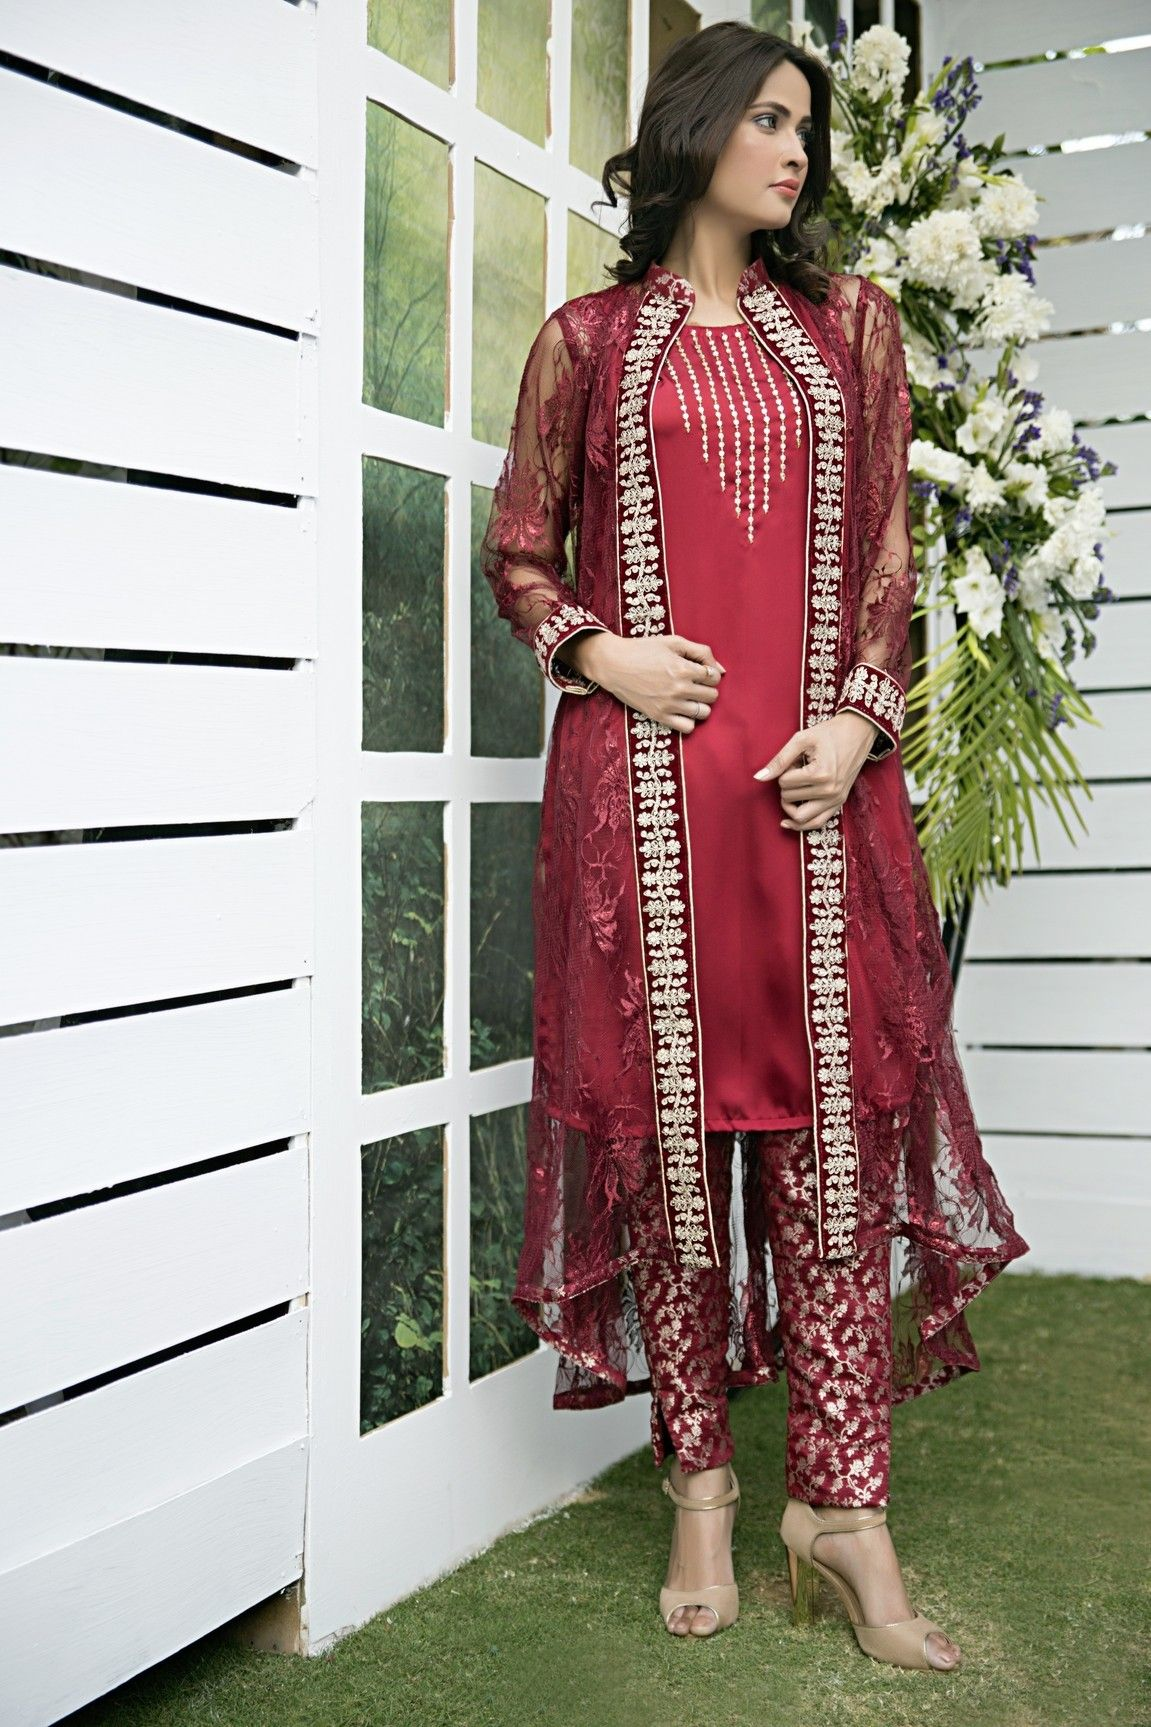 1d3def165eb2 Pakistani Designer Dresses - Lowest Prices - Maroon Chantilly lace ...